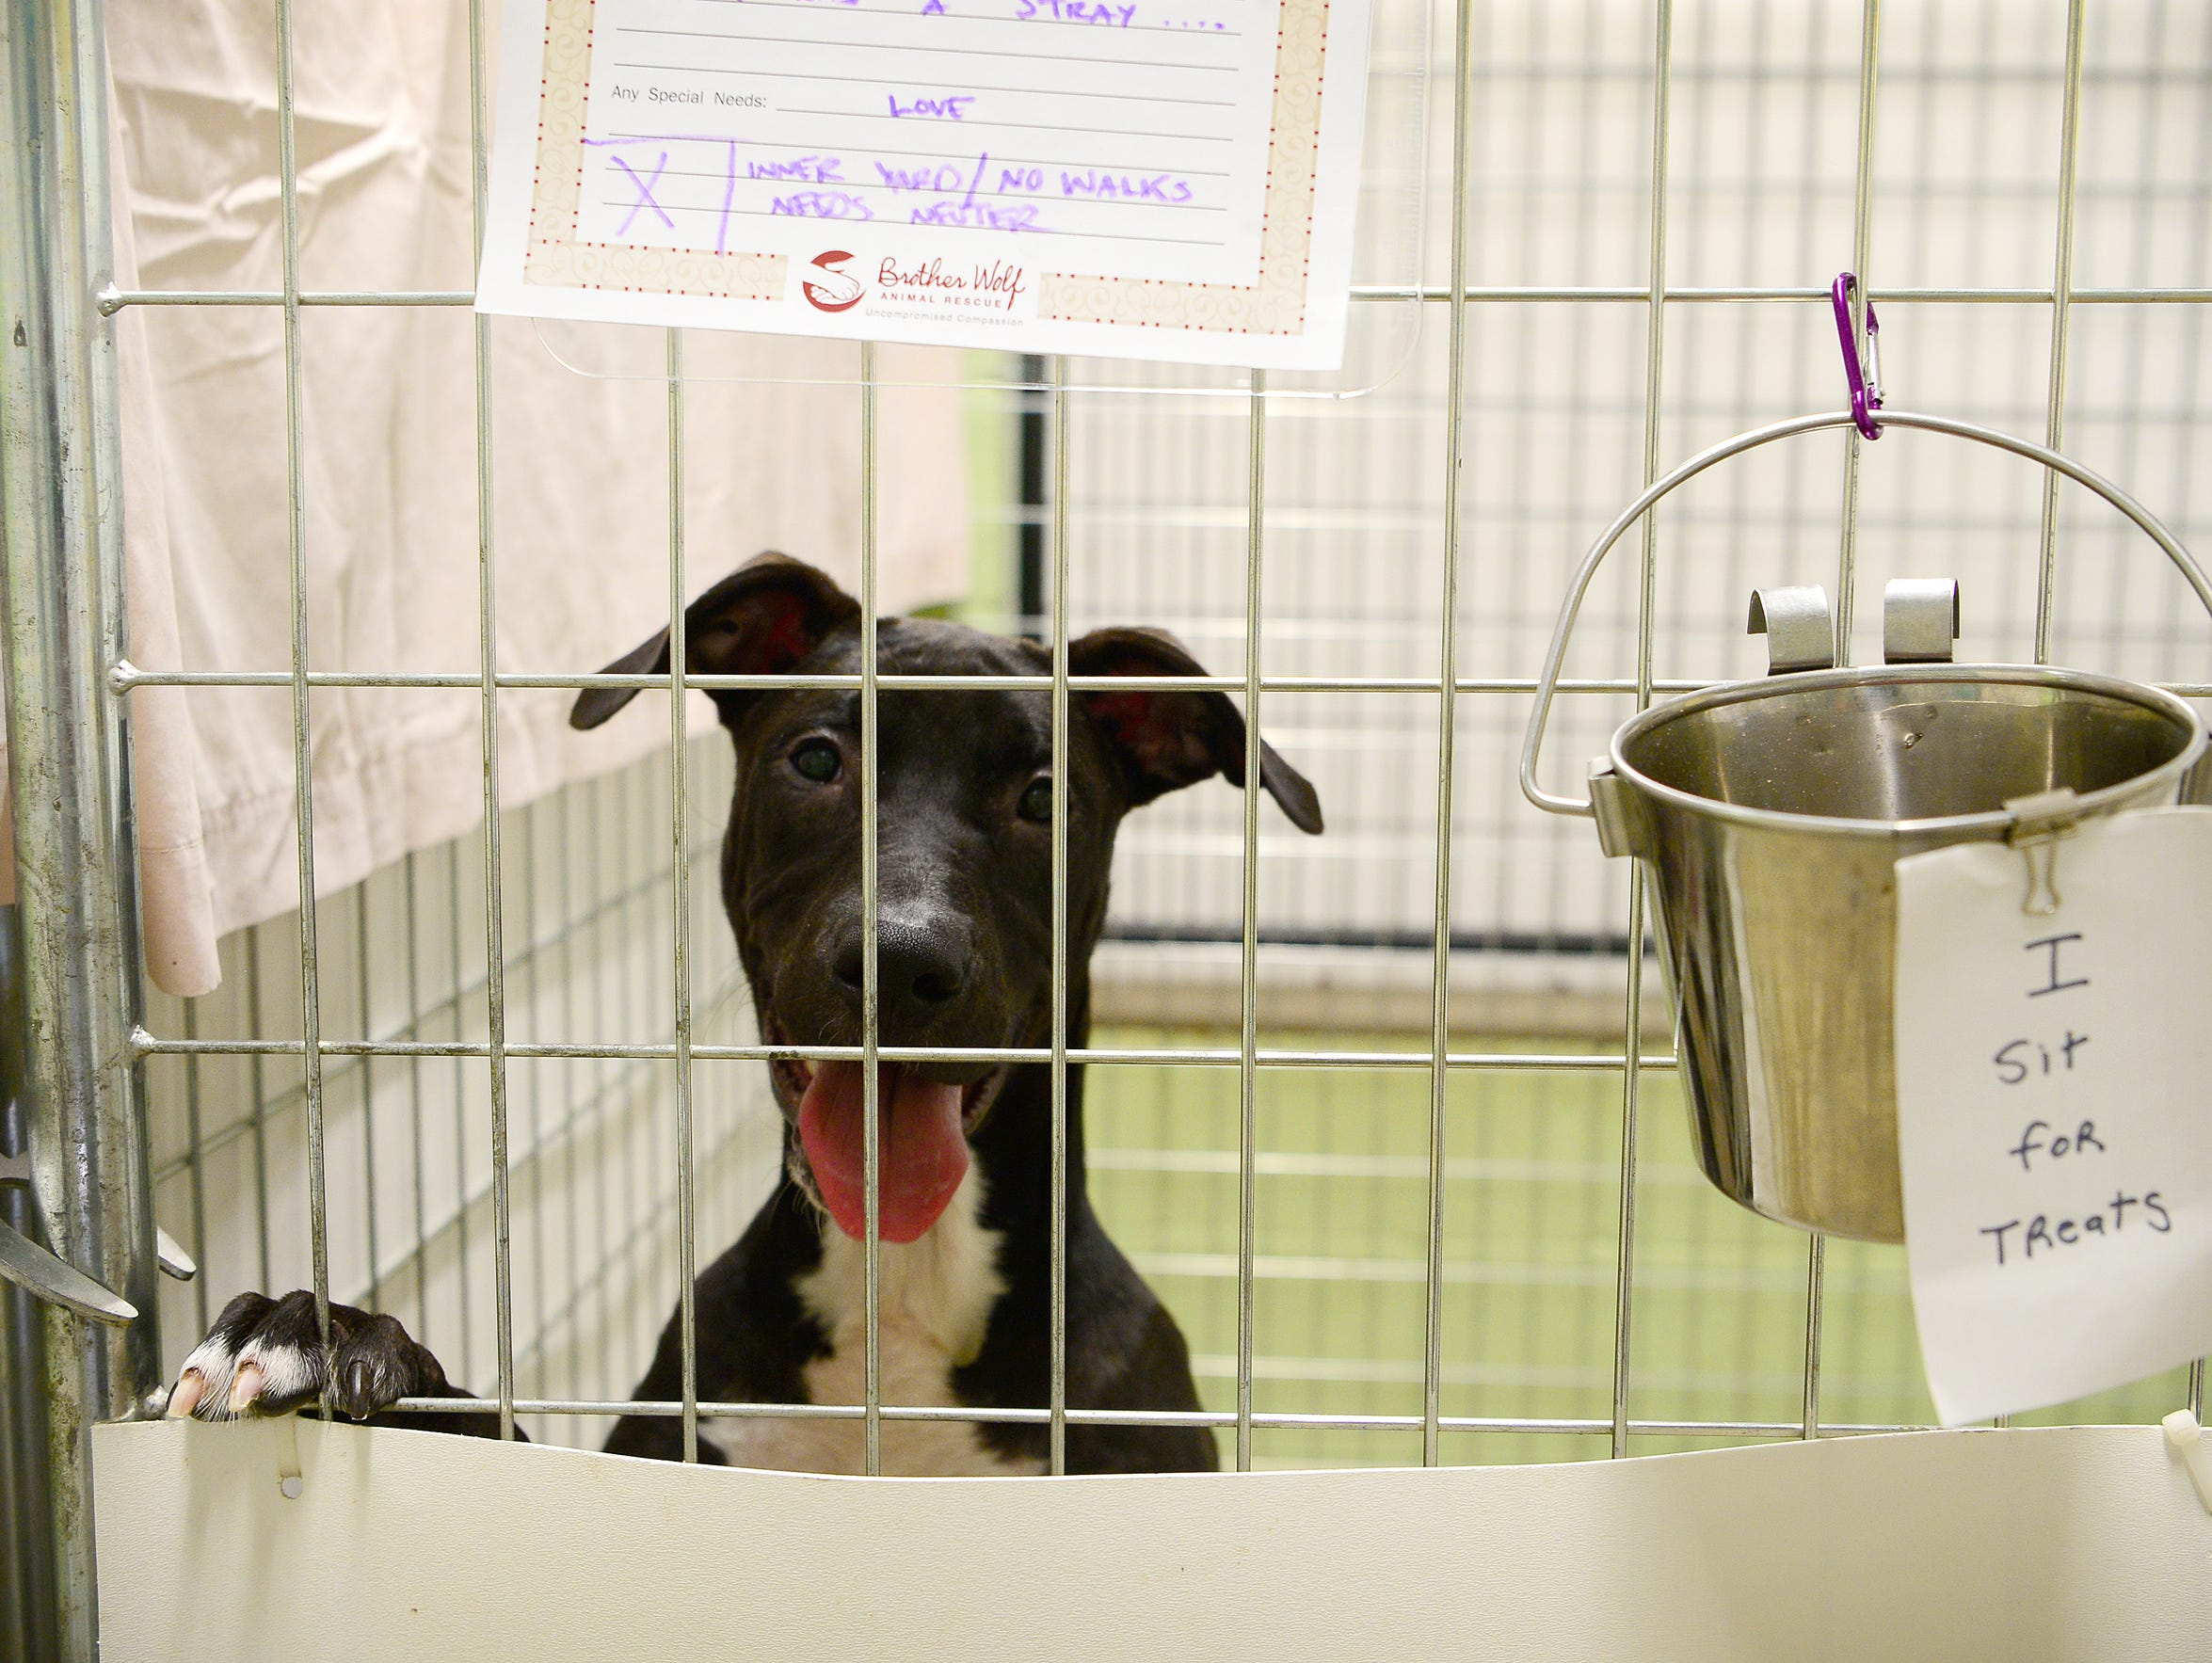 Crowly, a dog available for adoption, leaps up onto